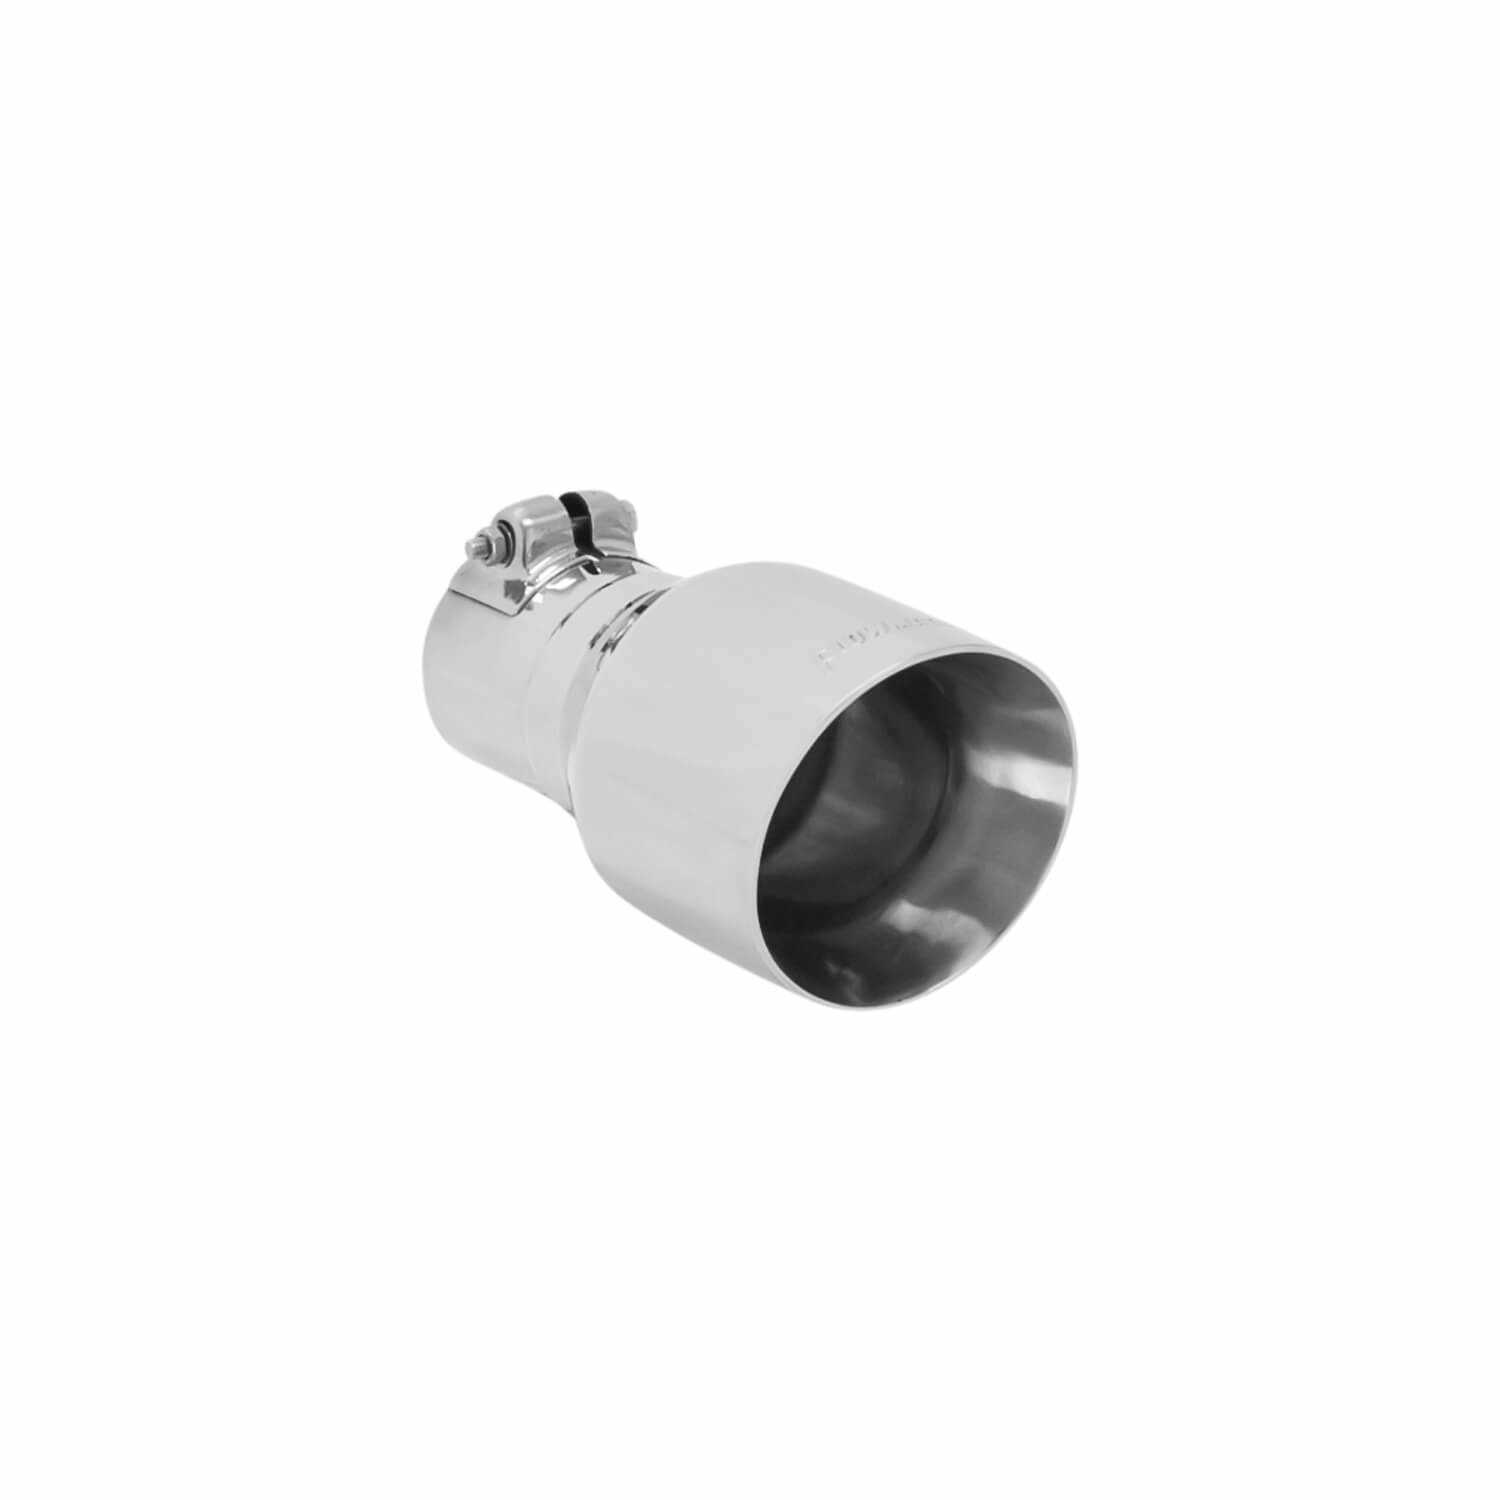 Flowmaster Stainless Steel Exhaust Tip 15396